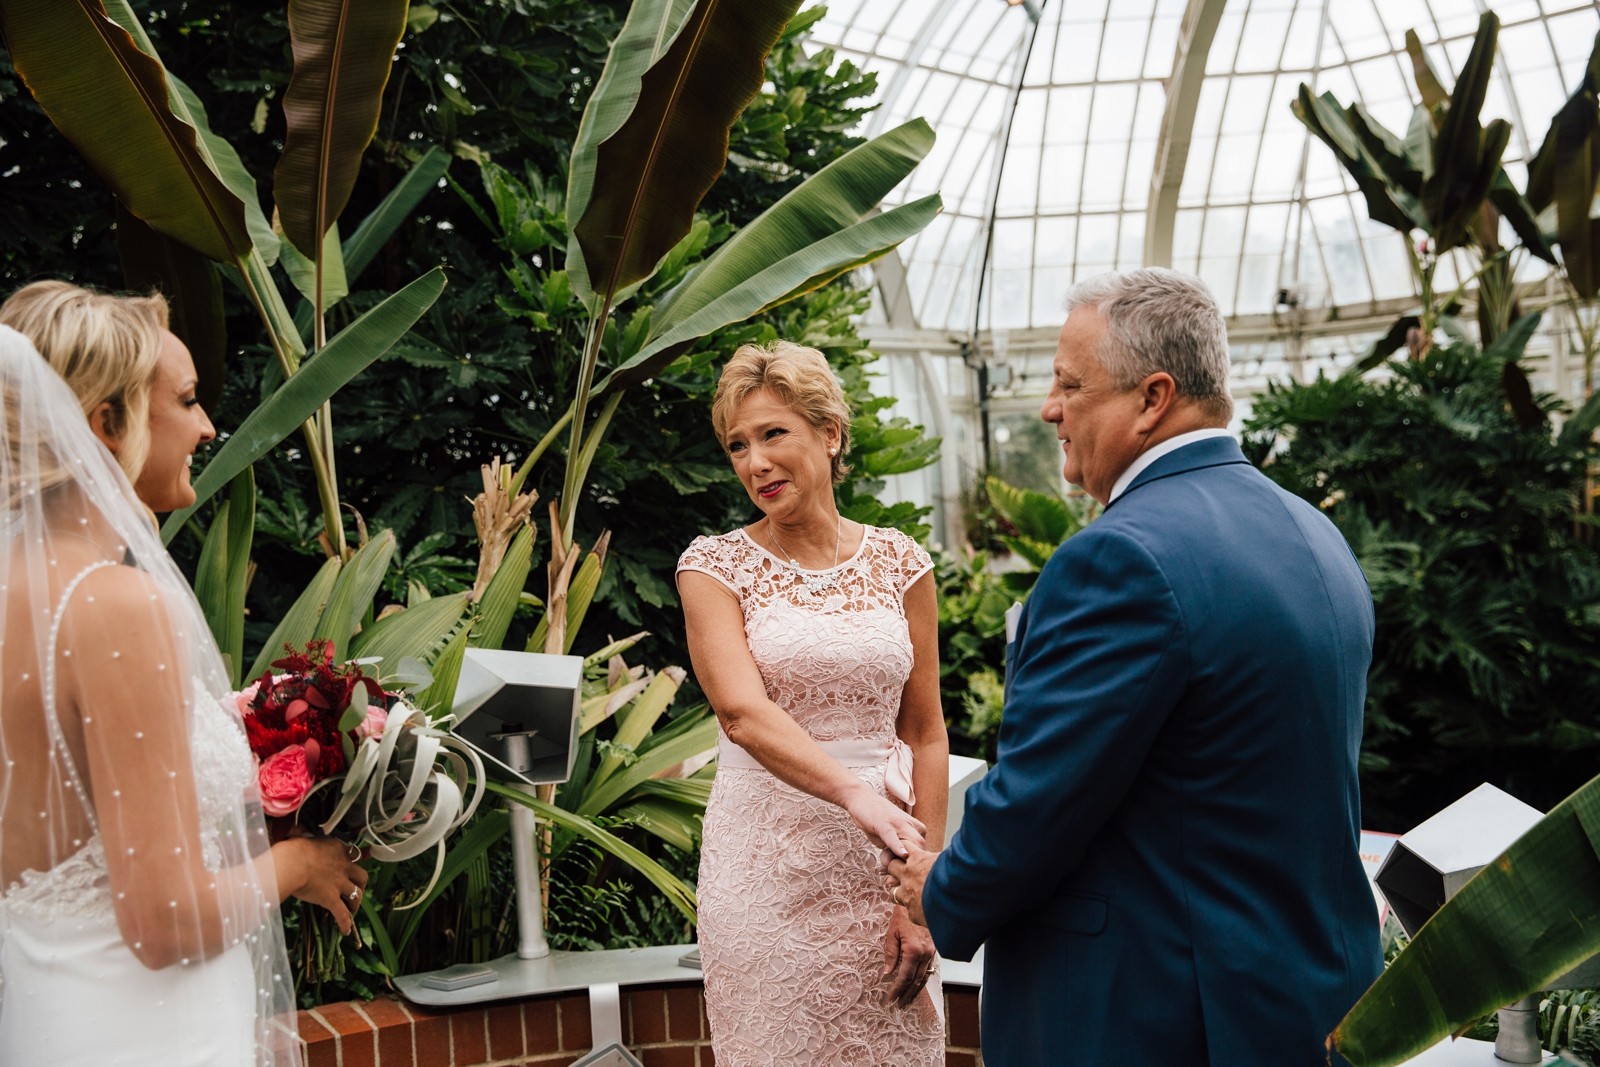 Pittsburgh wedding photographer phipps heinz history center